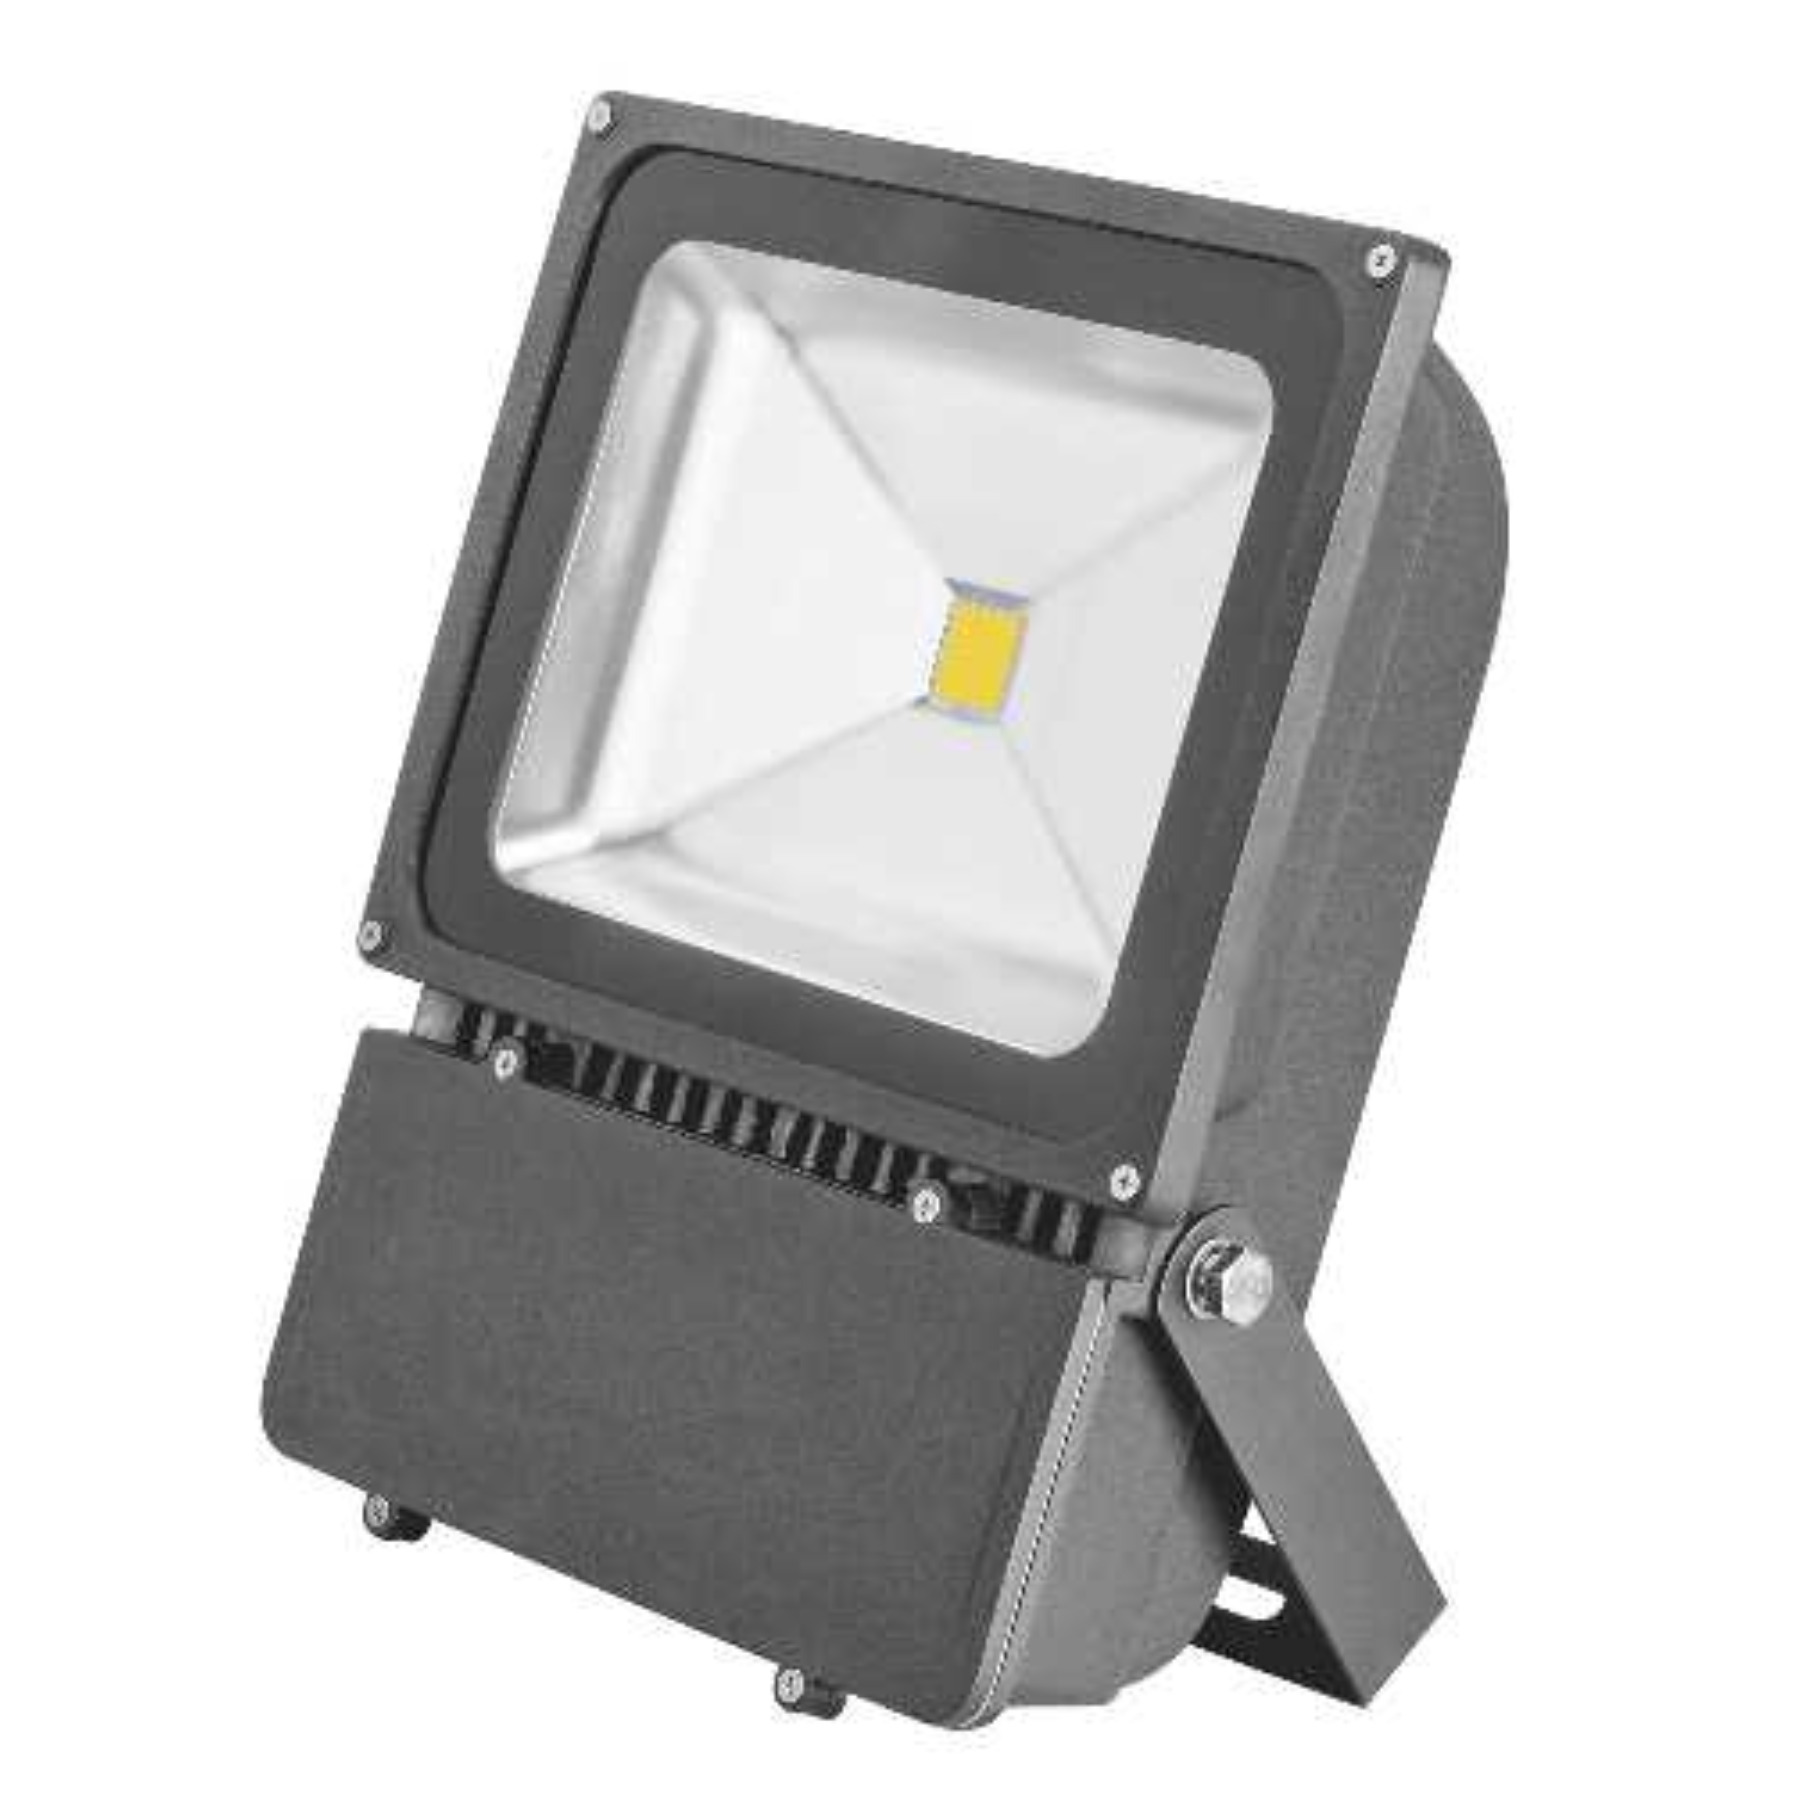 MONUMENT LED FLOODLIGHT WITH ALUMINUM HOUSING, BRONZE, 9-3/16X11-3/16X5-3/16 IN., 1 100-WATT LAMP (INCLUDED)